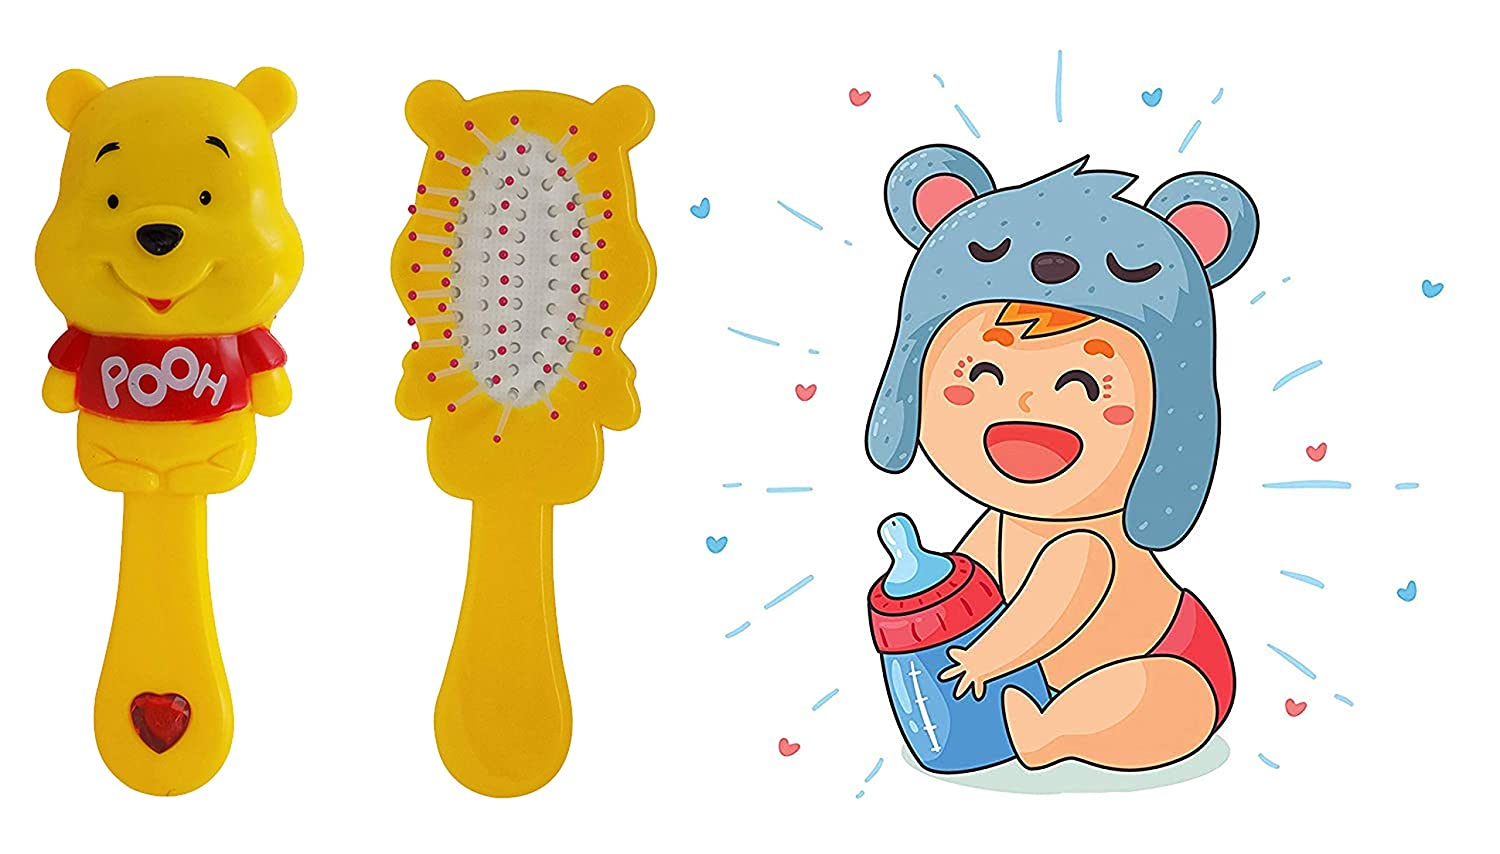 Buy Pelo Hair Brush For Kids Girls And Women Latest Detangling Hair Brush And Comb Cartoon Character Hair Brush For Gift Yellow 10 Grams Pack Of 1 Online At Low Prices In